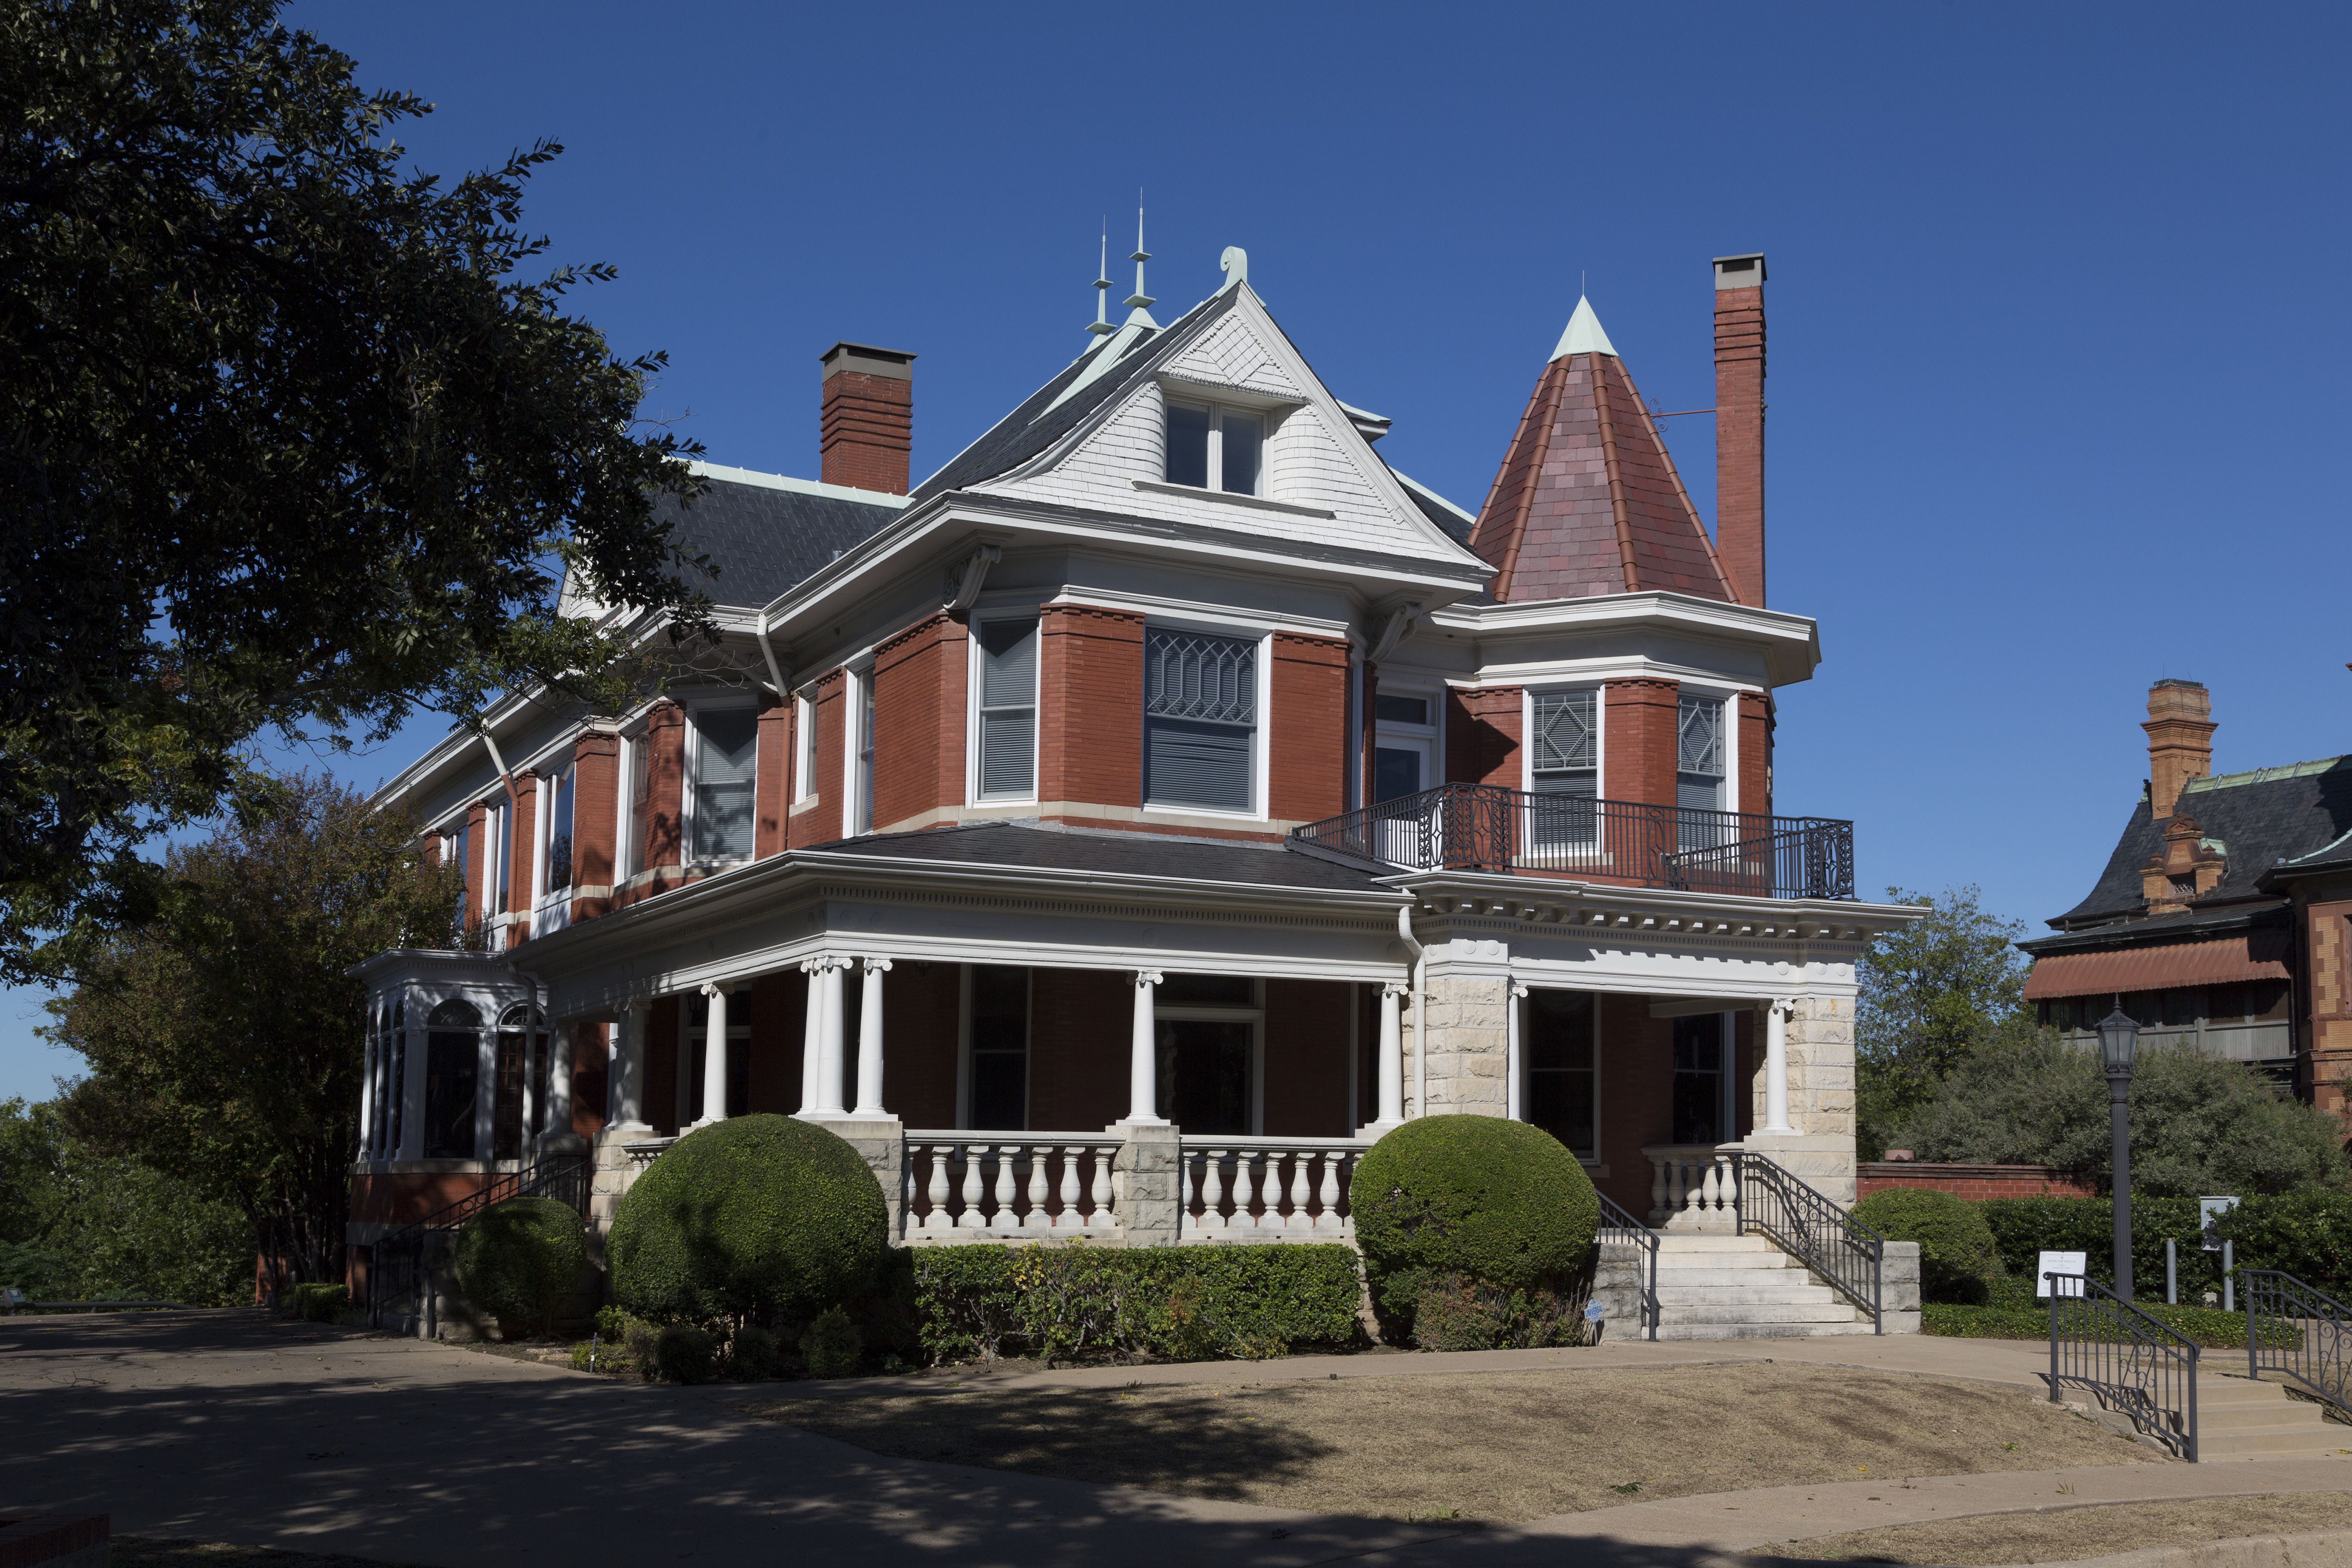 Is your house a queen anne picts of popular victorians - Types of victorian homes ...